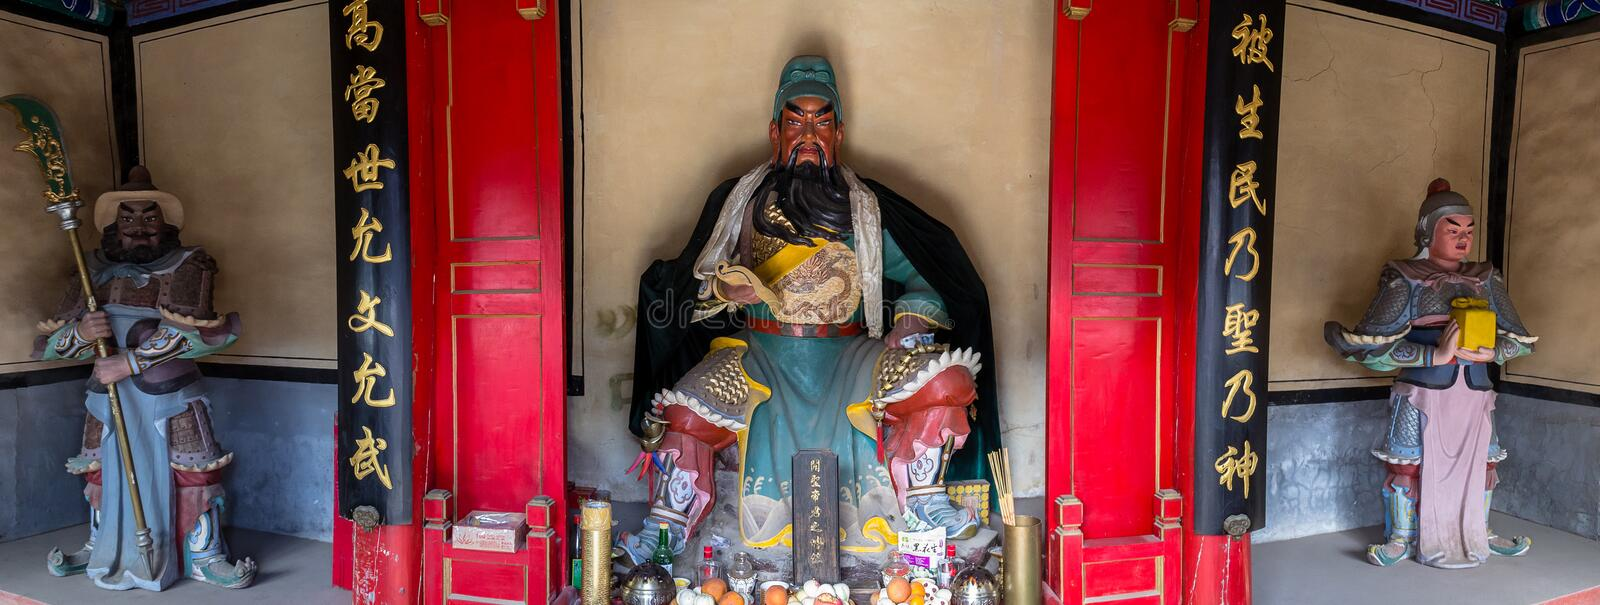 Mar 2014, Chuandixia, Hebei, China : the interior of Guandi temple royalty free stock images